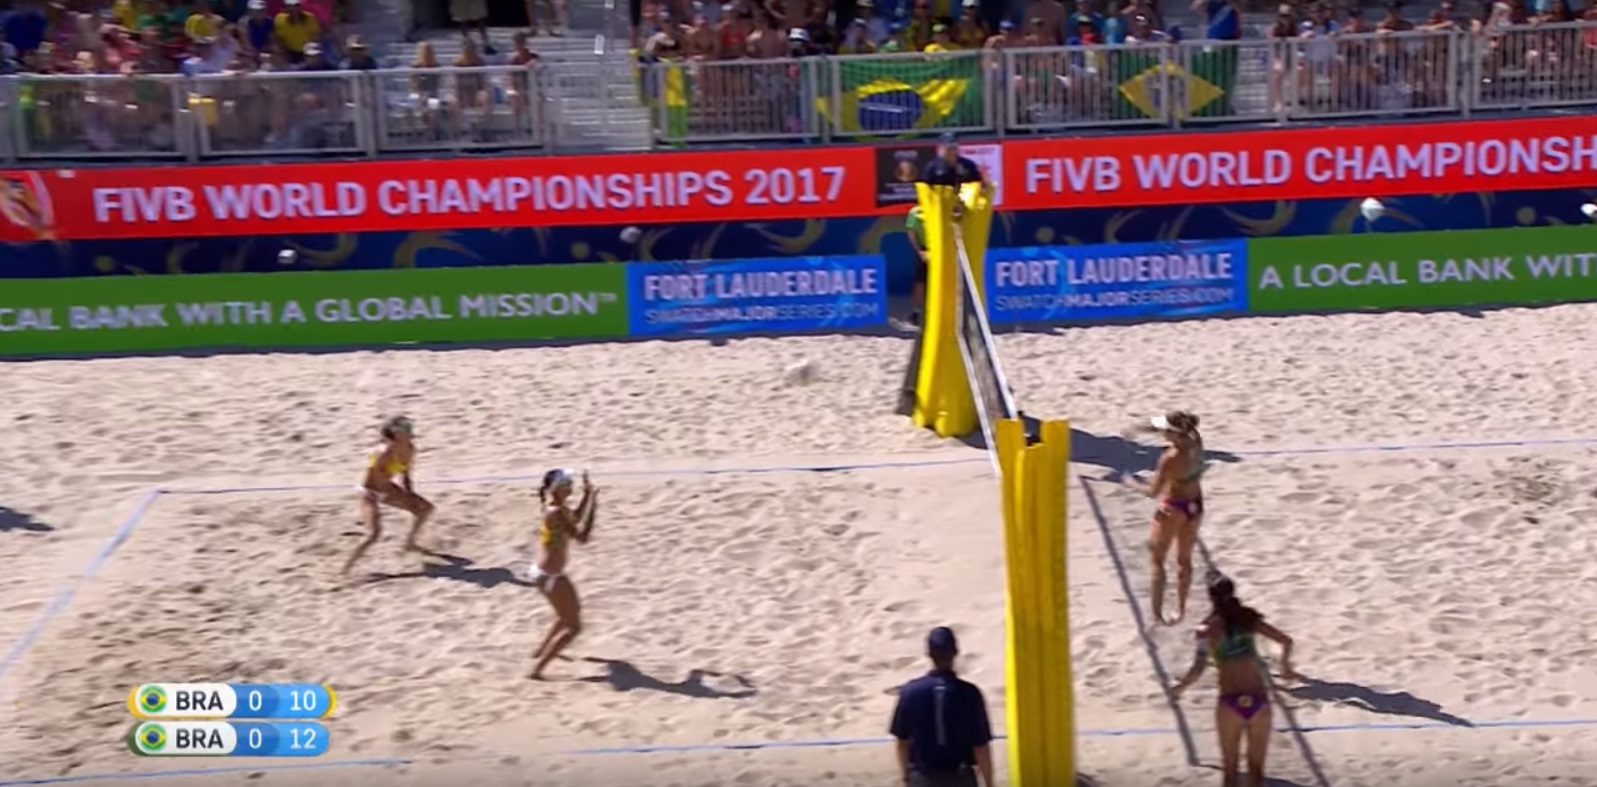 #FTLMajor 2017 The most epic rally of all...